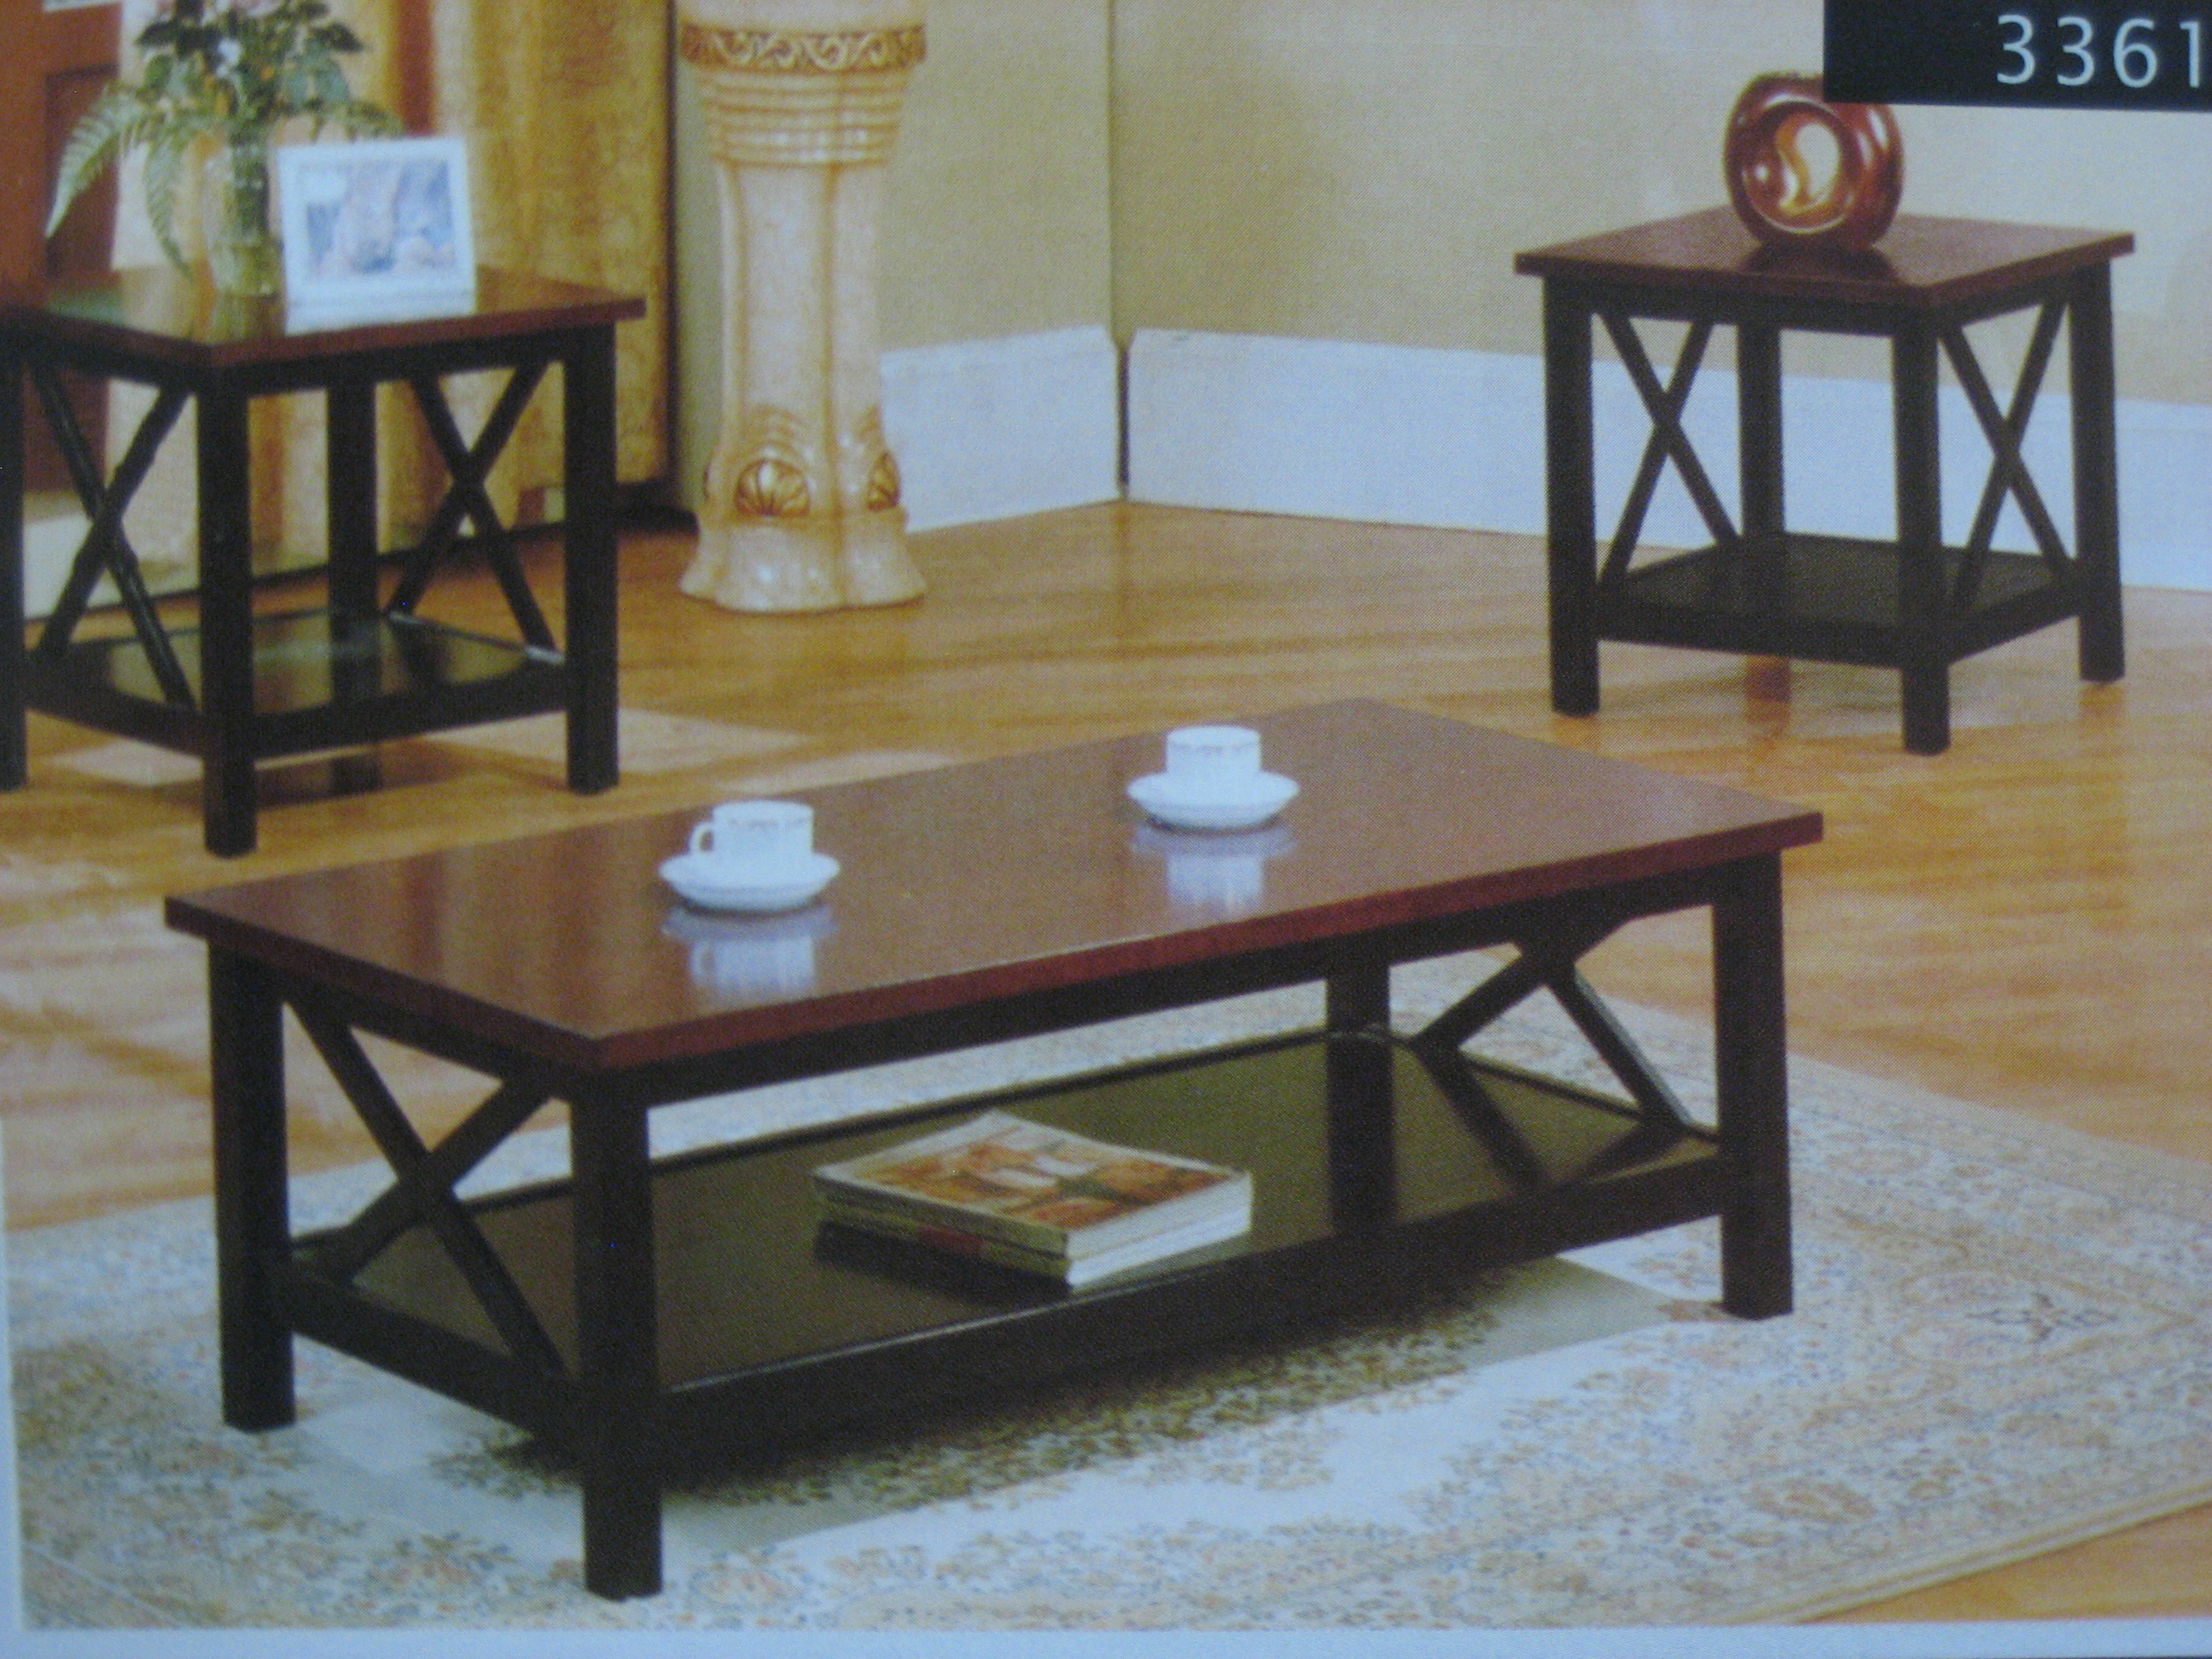 3361 Coffee Table 2 End Tables Set Furniture Outlet Llc In Pickerington Ohio 1272 Hill Rd